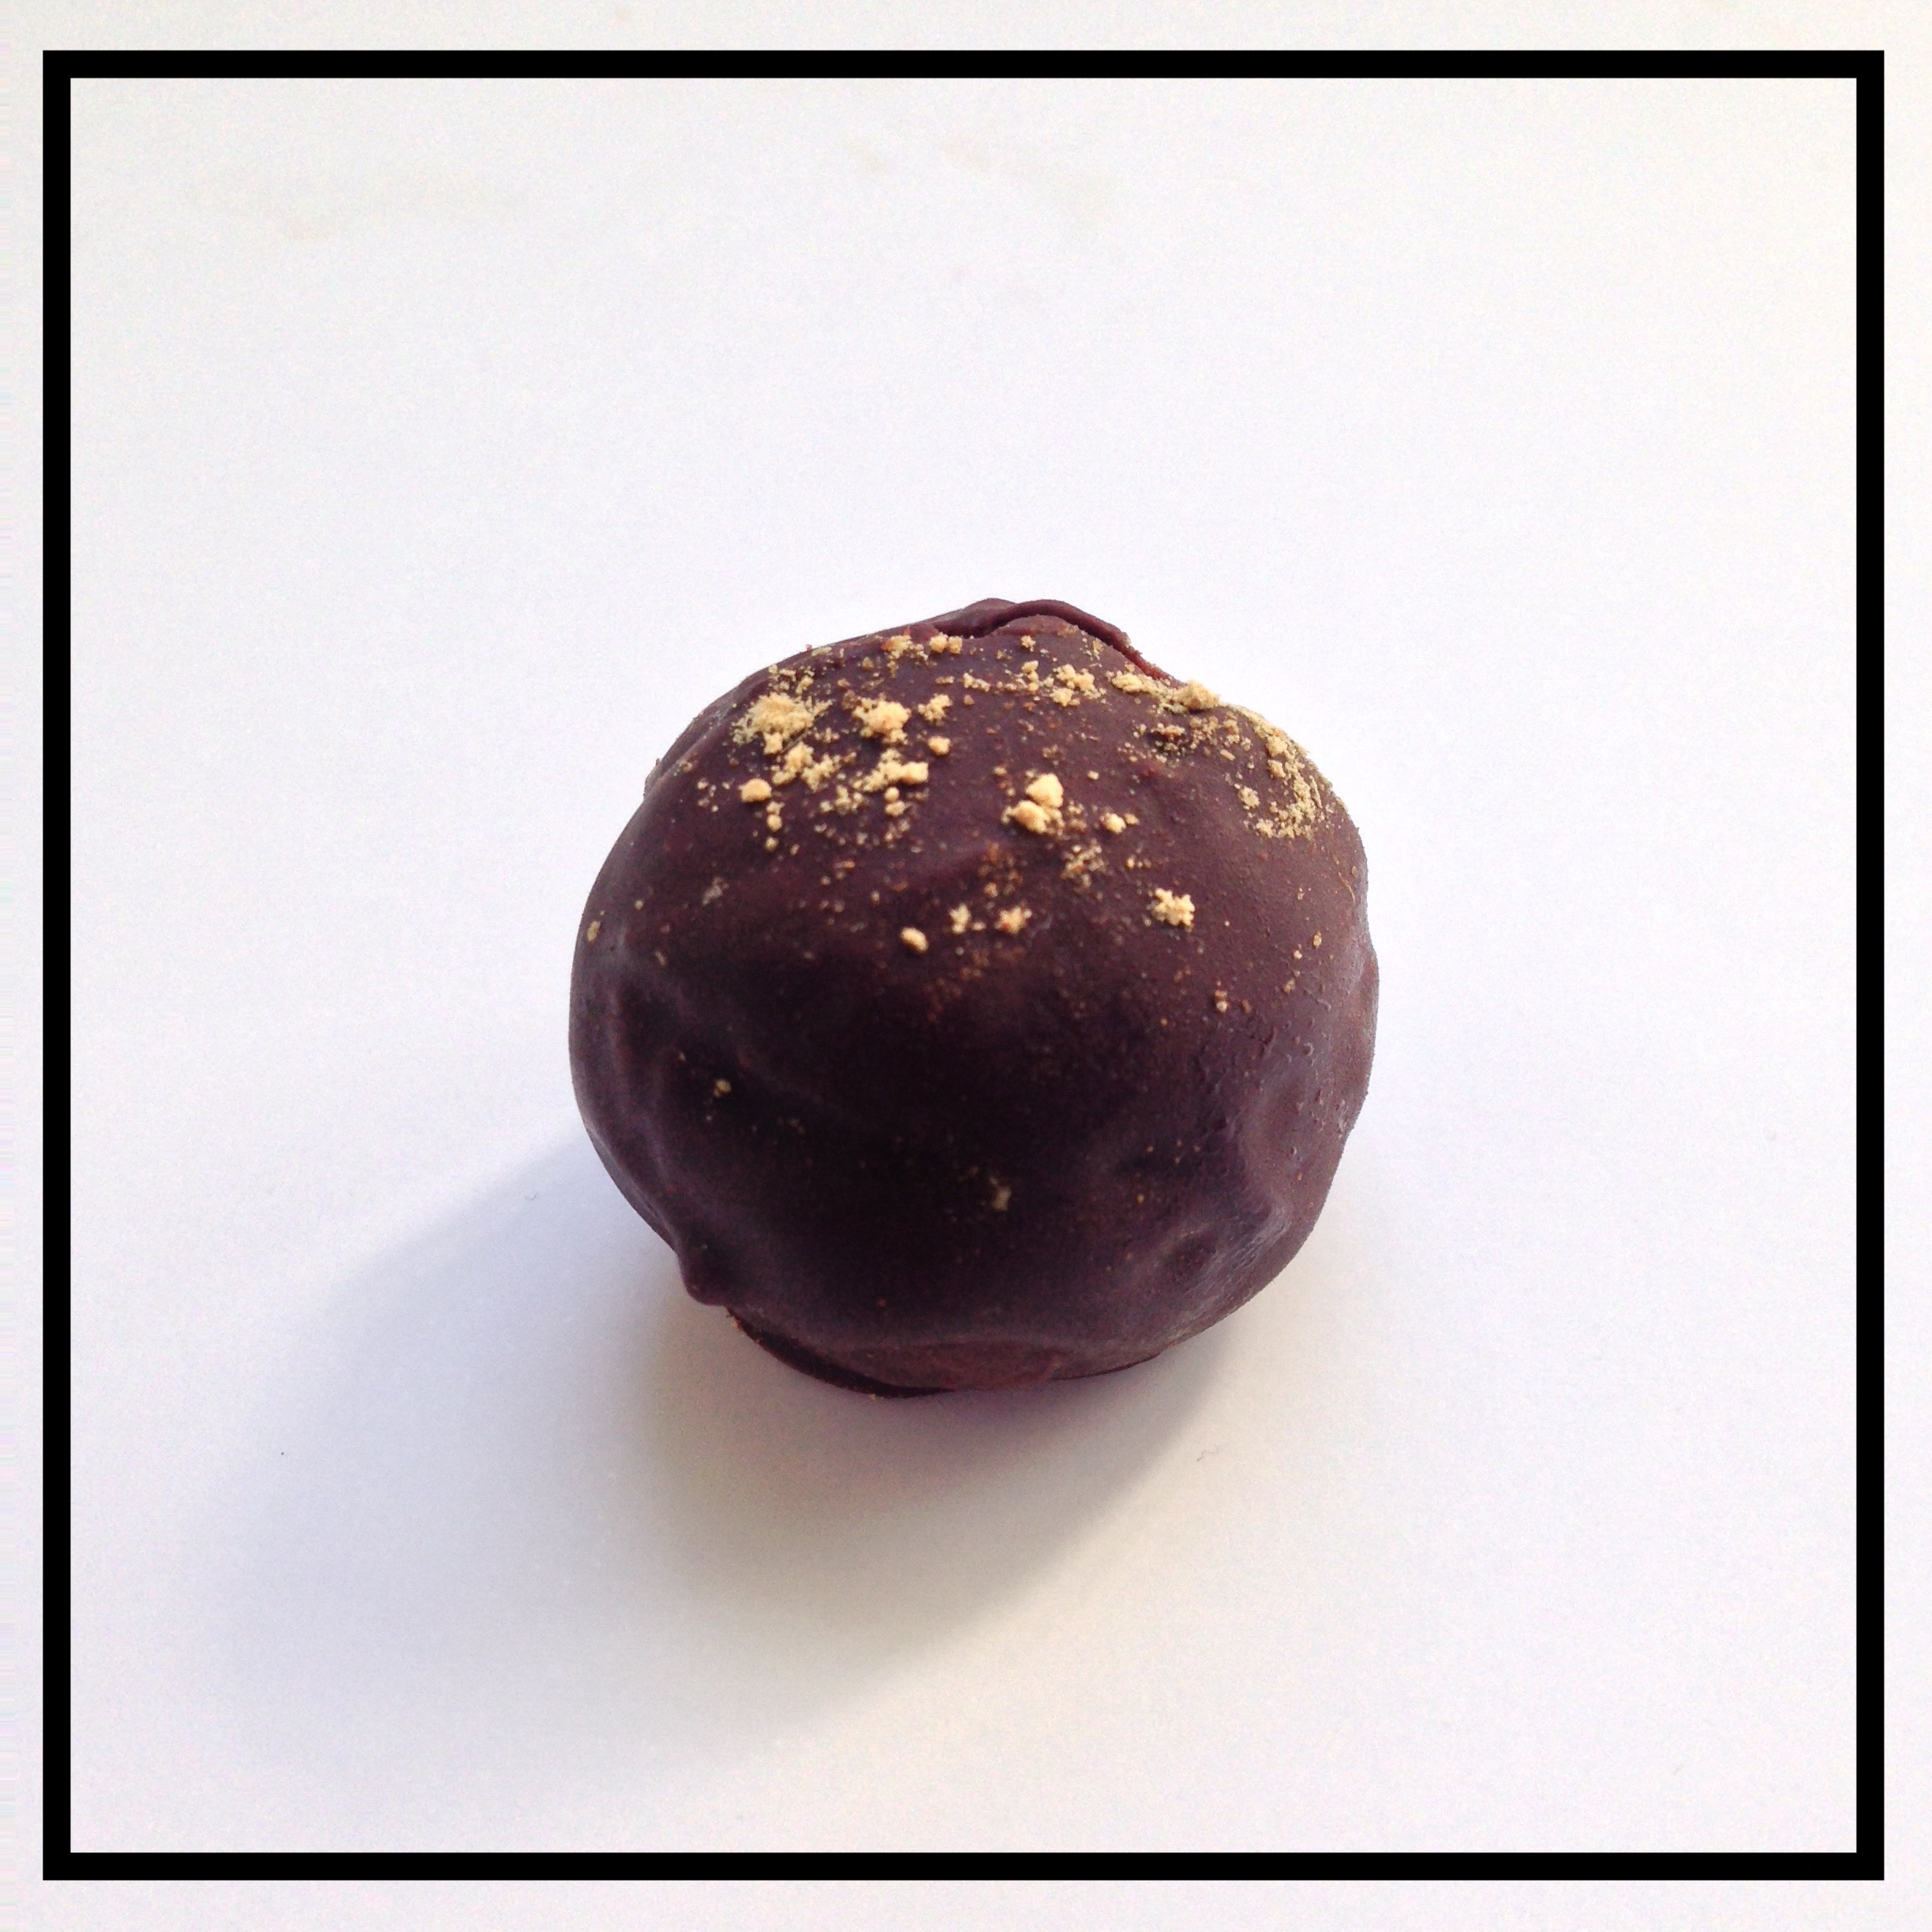 GINGER   Chocolate ganache infused with freshly grated ginger